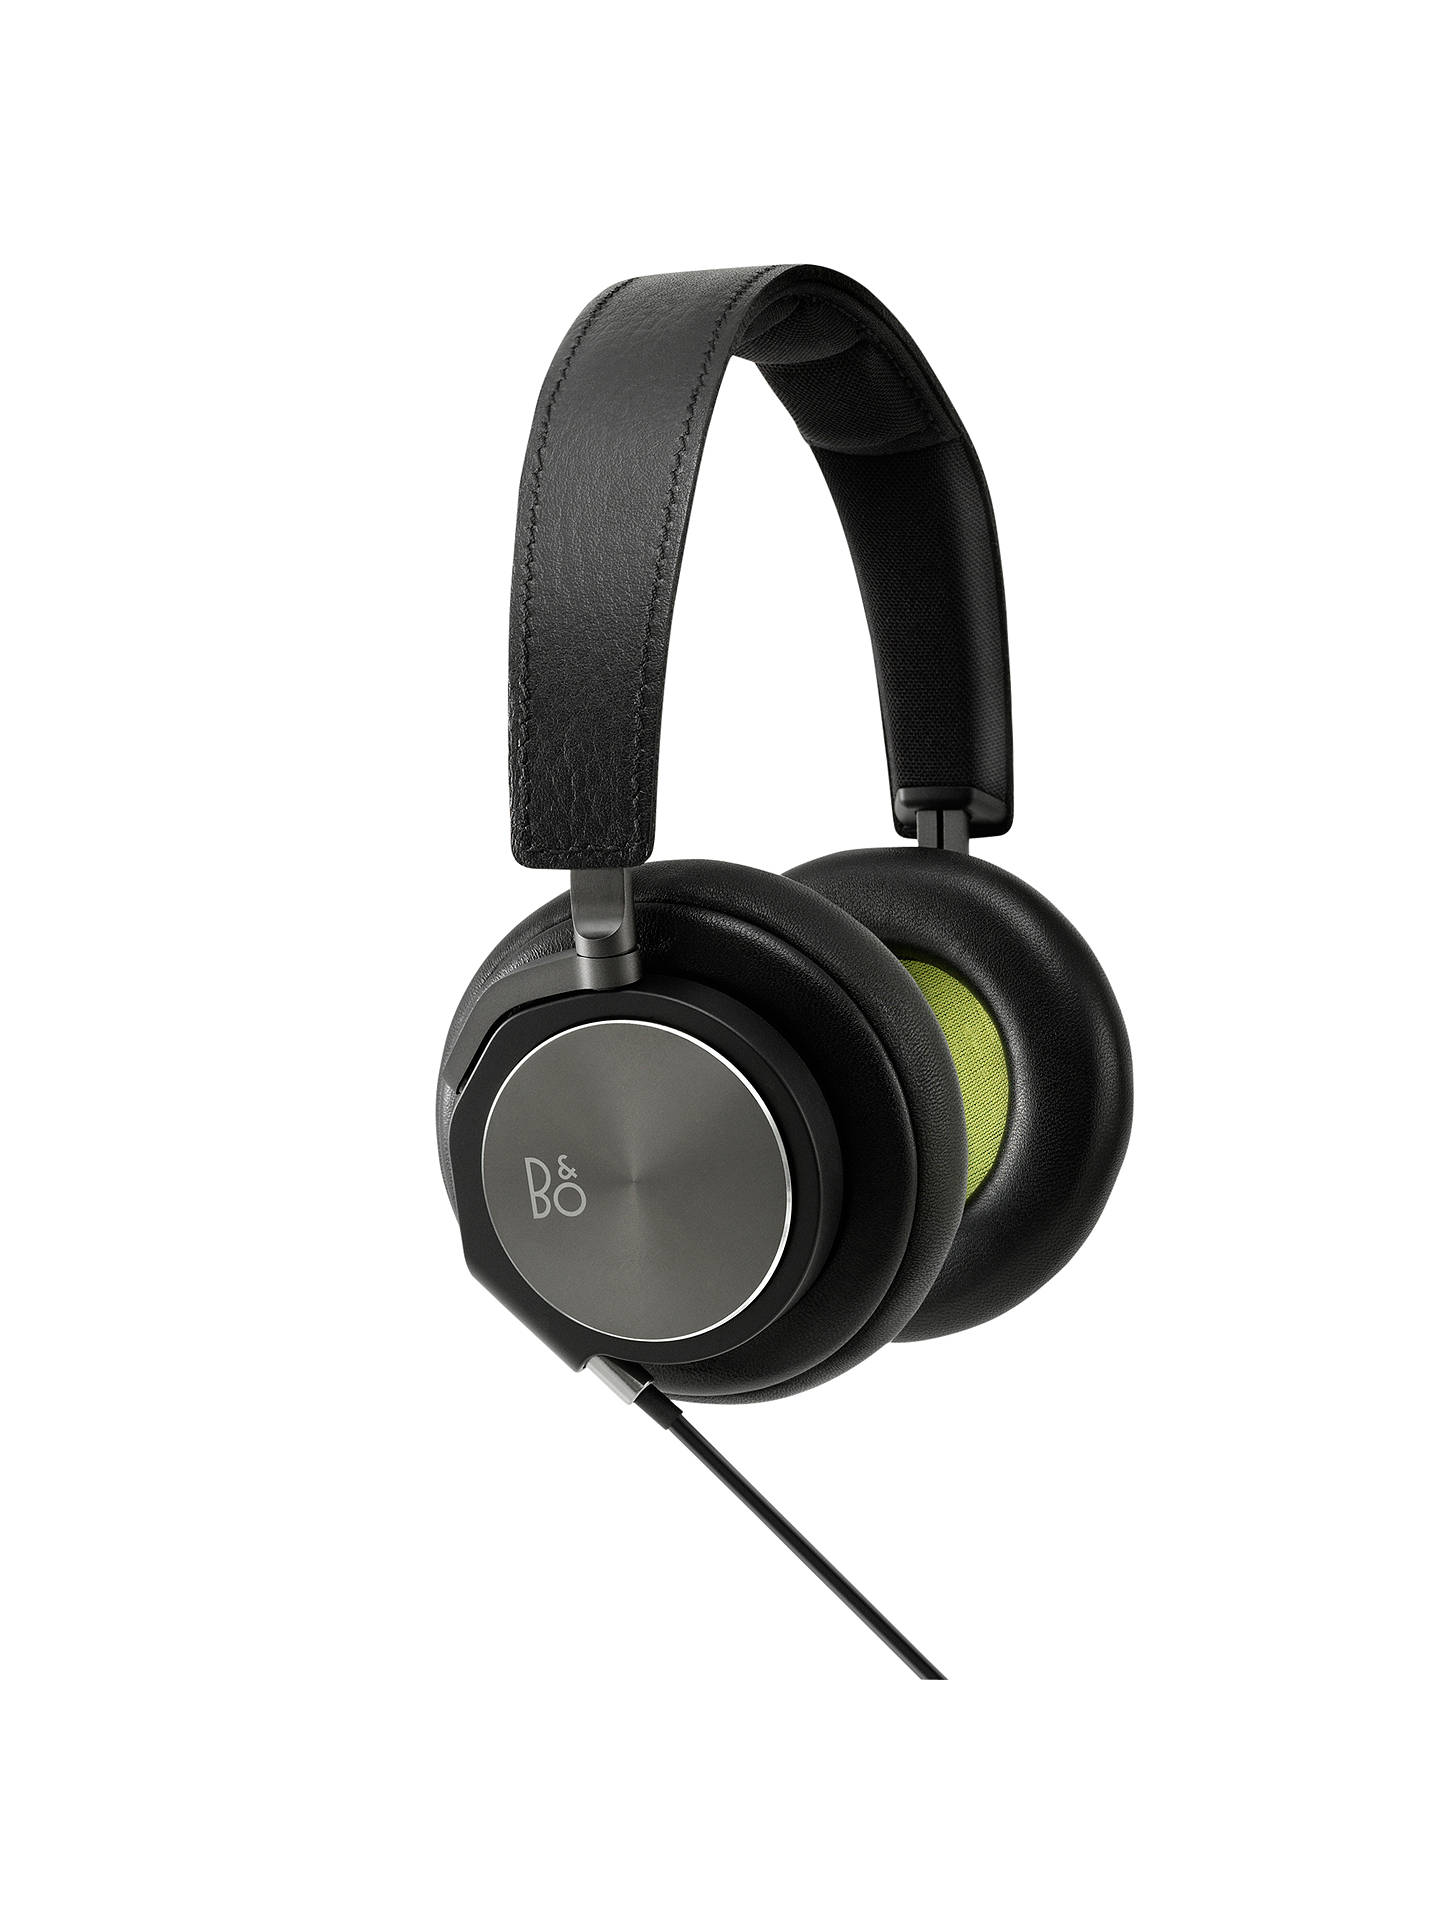 Buy Bang & Olufsen Beoplay H6 On-Ear Headphones with Mic/Remote, Black Online at johnlewis.com